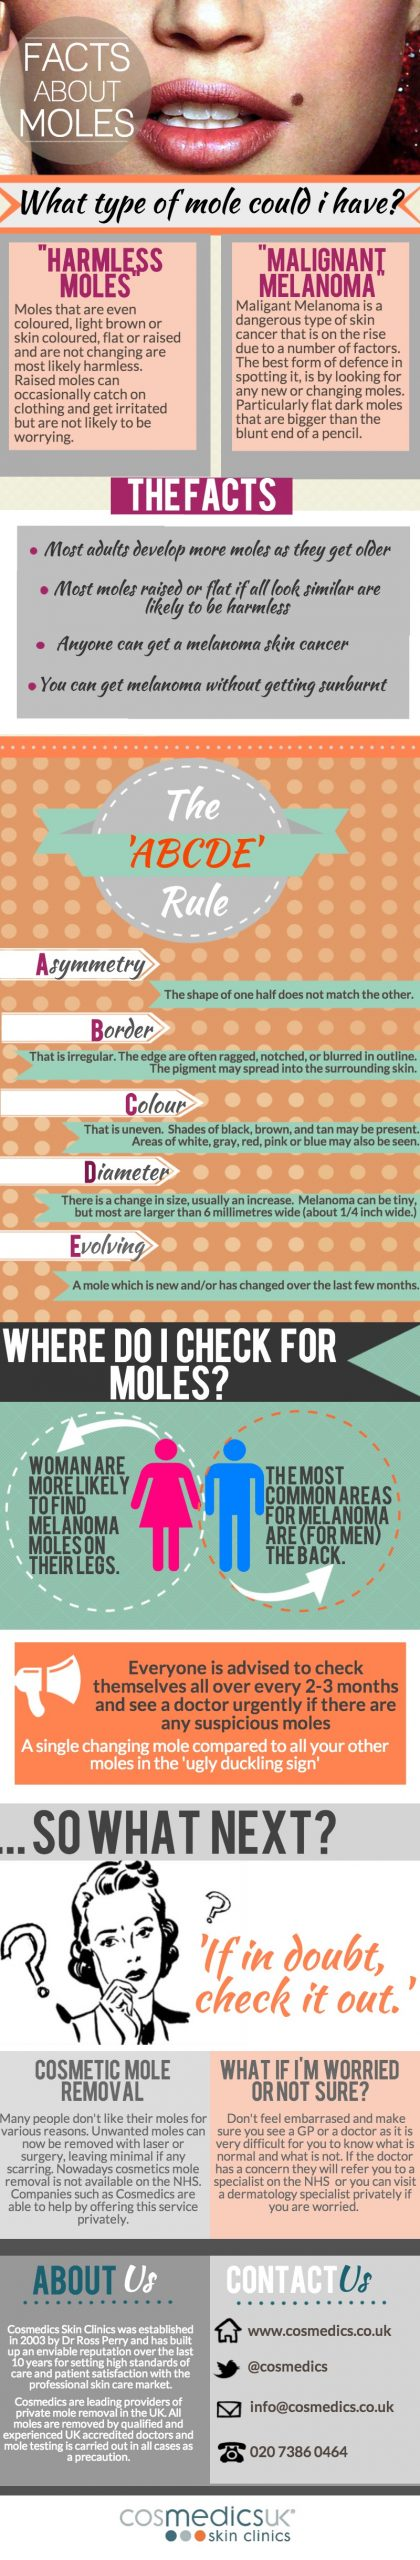 facts about moles infographic